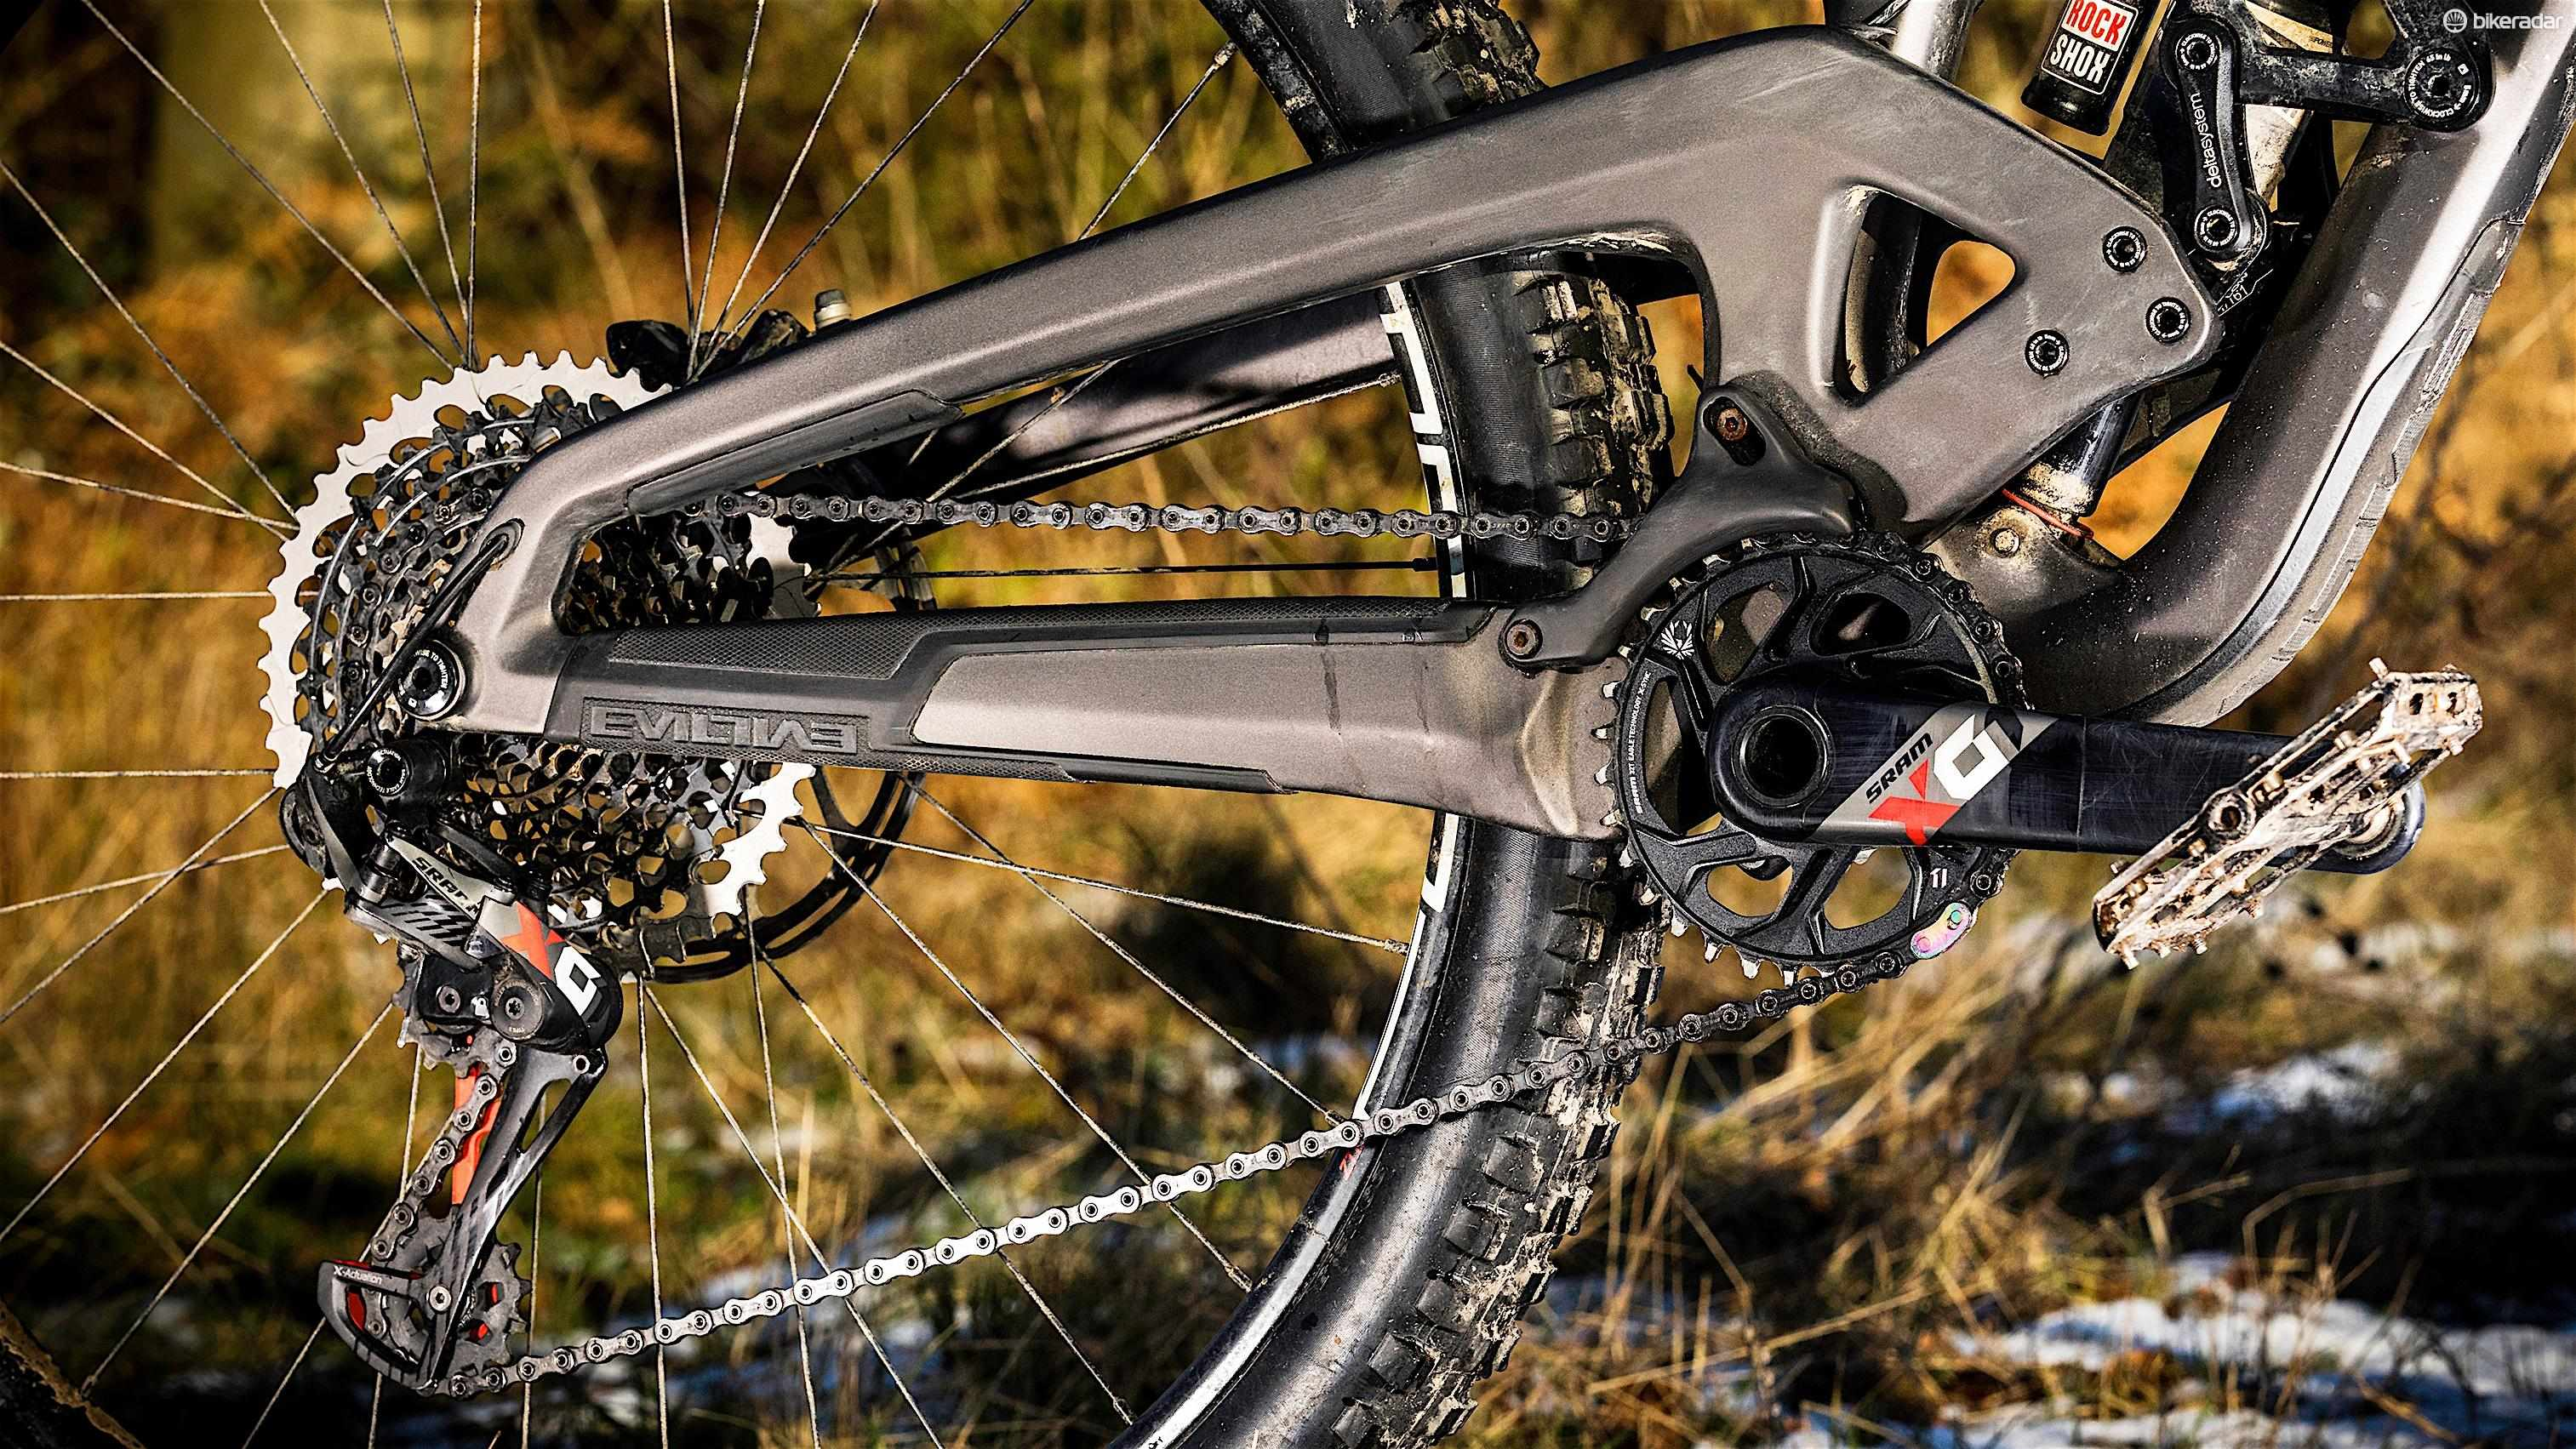 SRAM's X01 Eagle 12-speed transmission